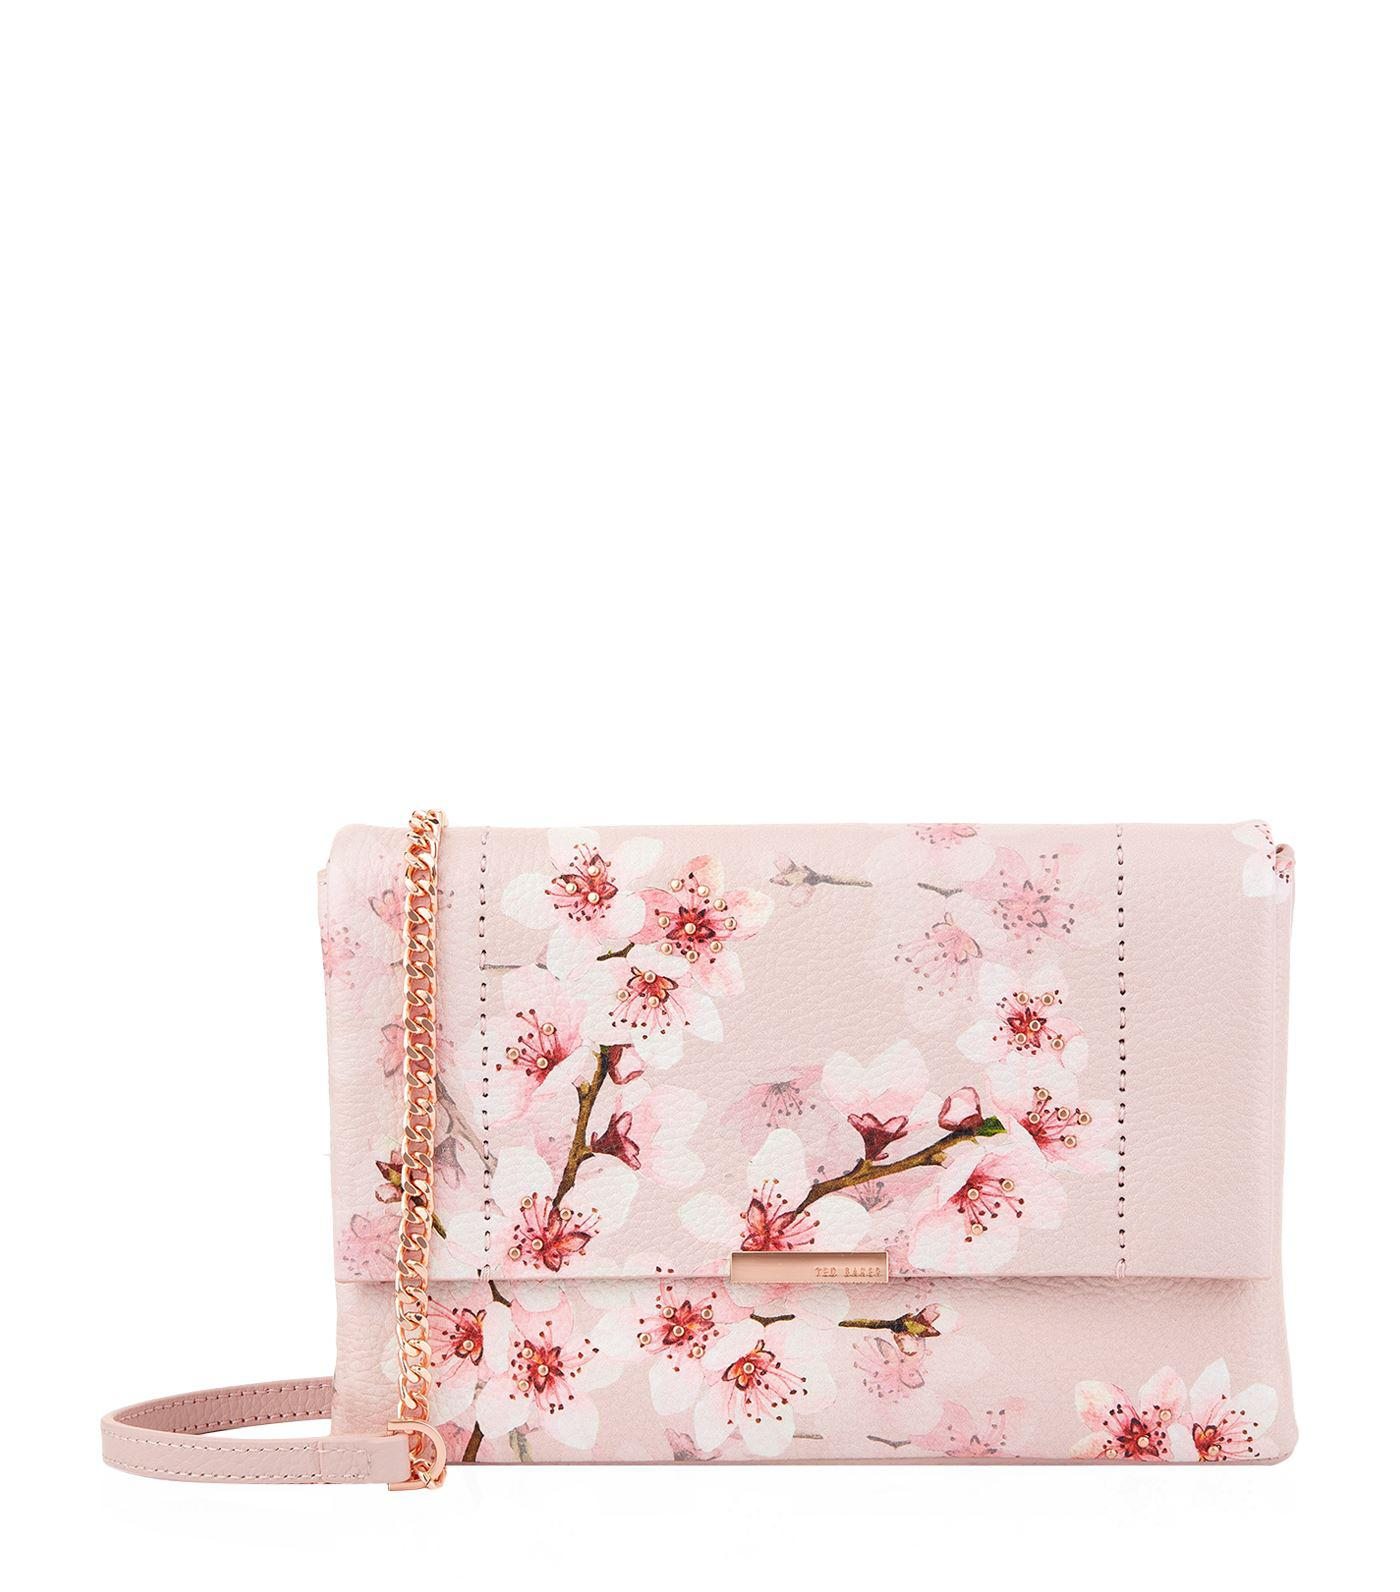 daec14bec7b3 Gallery. Previously sold at  Harrods · Women s Cross Body Bags ...